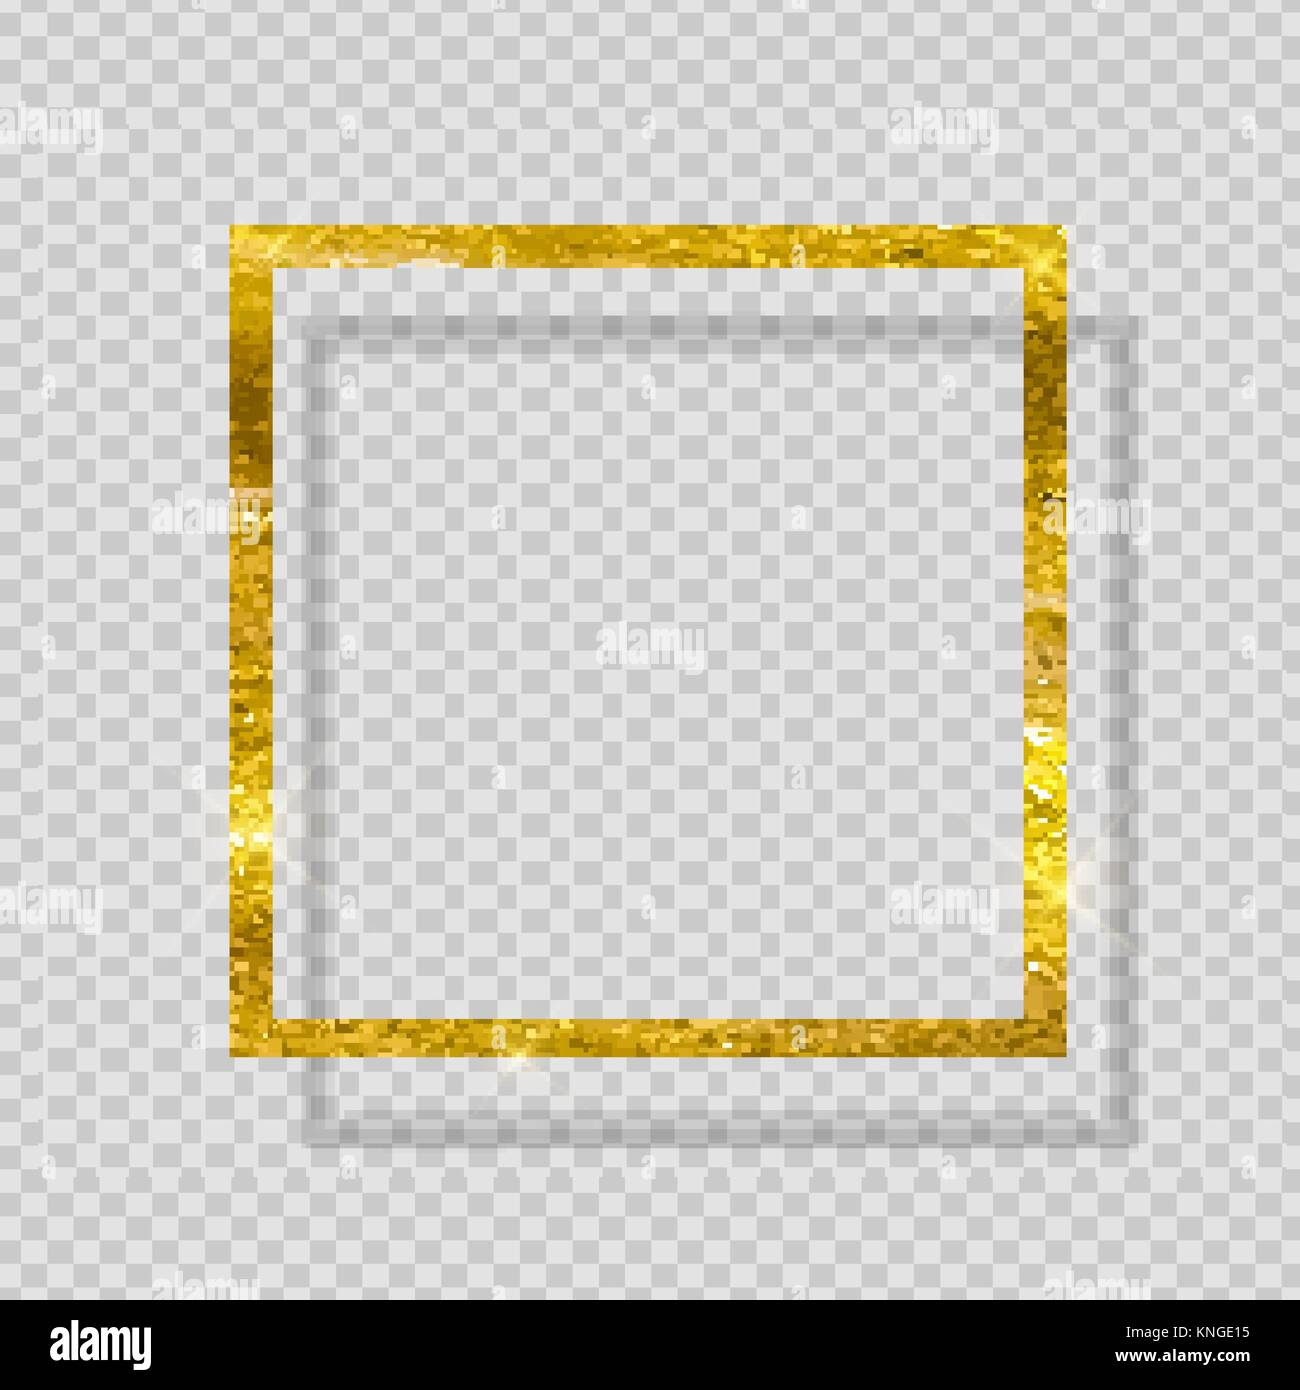 Gold Paint Glittering Textured Frame On Transparent Background Stock